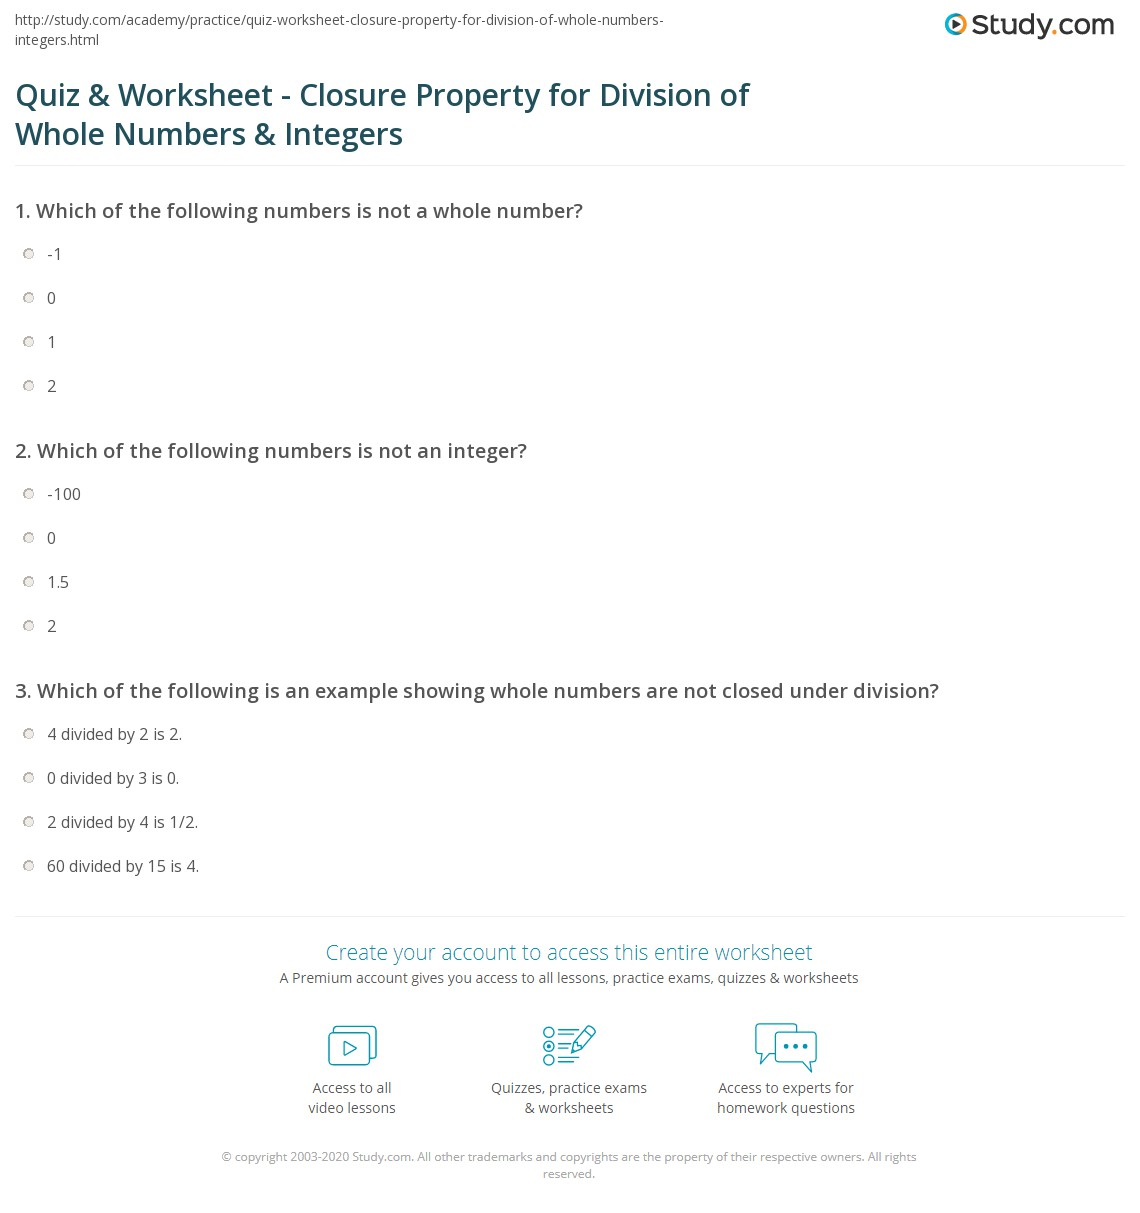 quiz  worksheet  closure property for division of whole numbers  print using the closure property to divide whole numbers  integers  worksheet